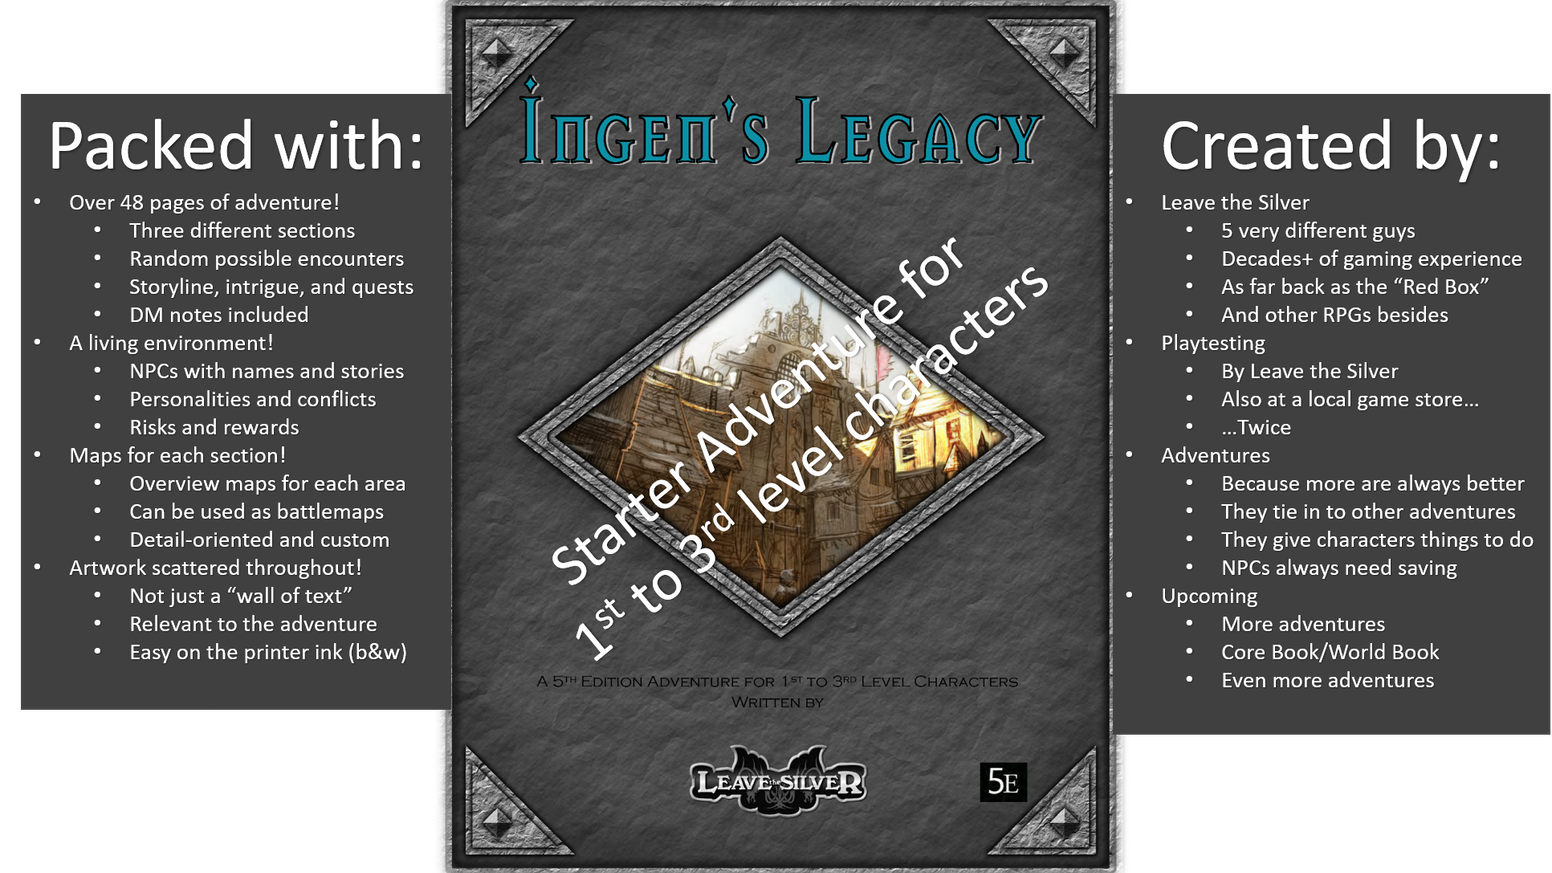 Ingen's Legacy is an adventure module for a 5e fantasy roleplaying campaign that can be dropped into any existing setting.